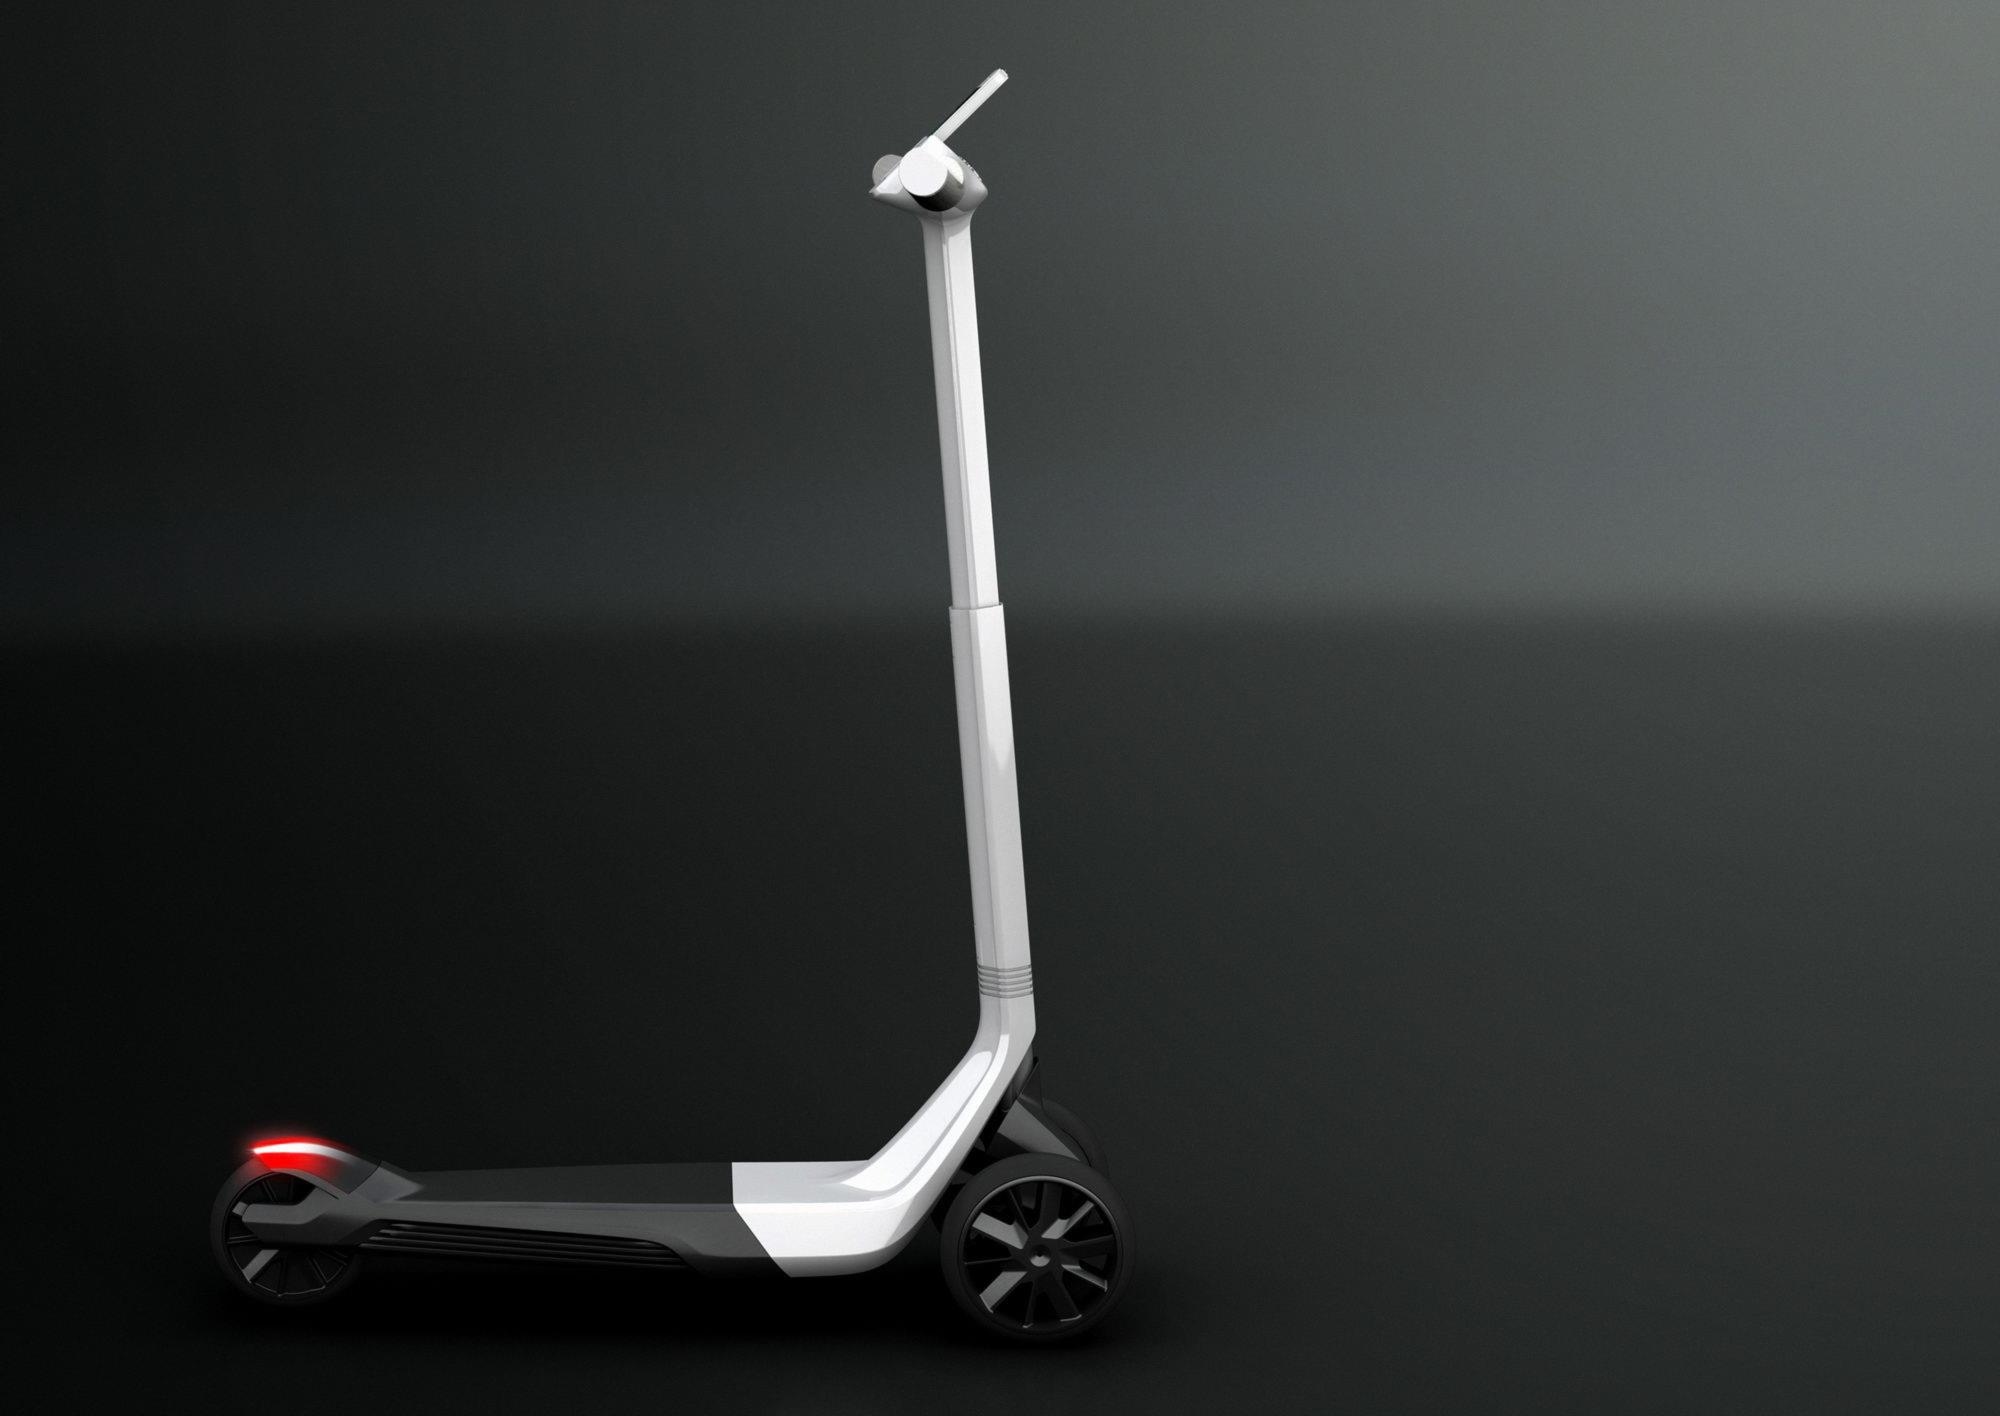 Peugeot Scooter Electric